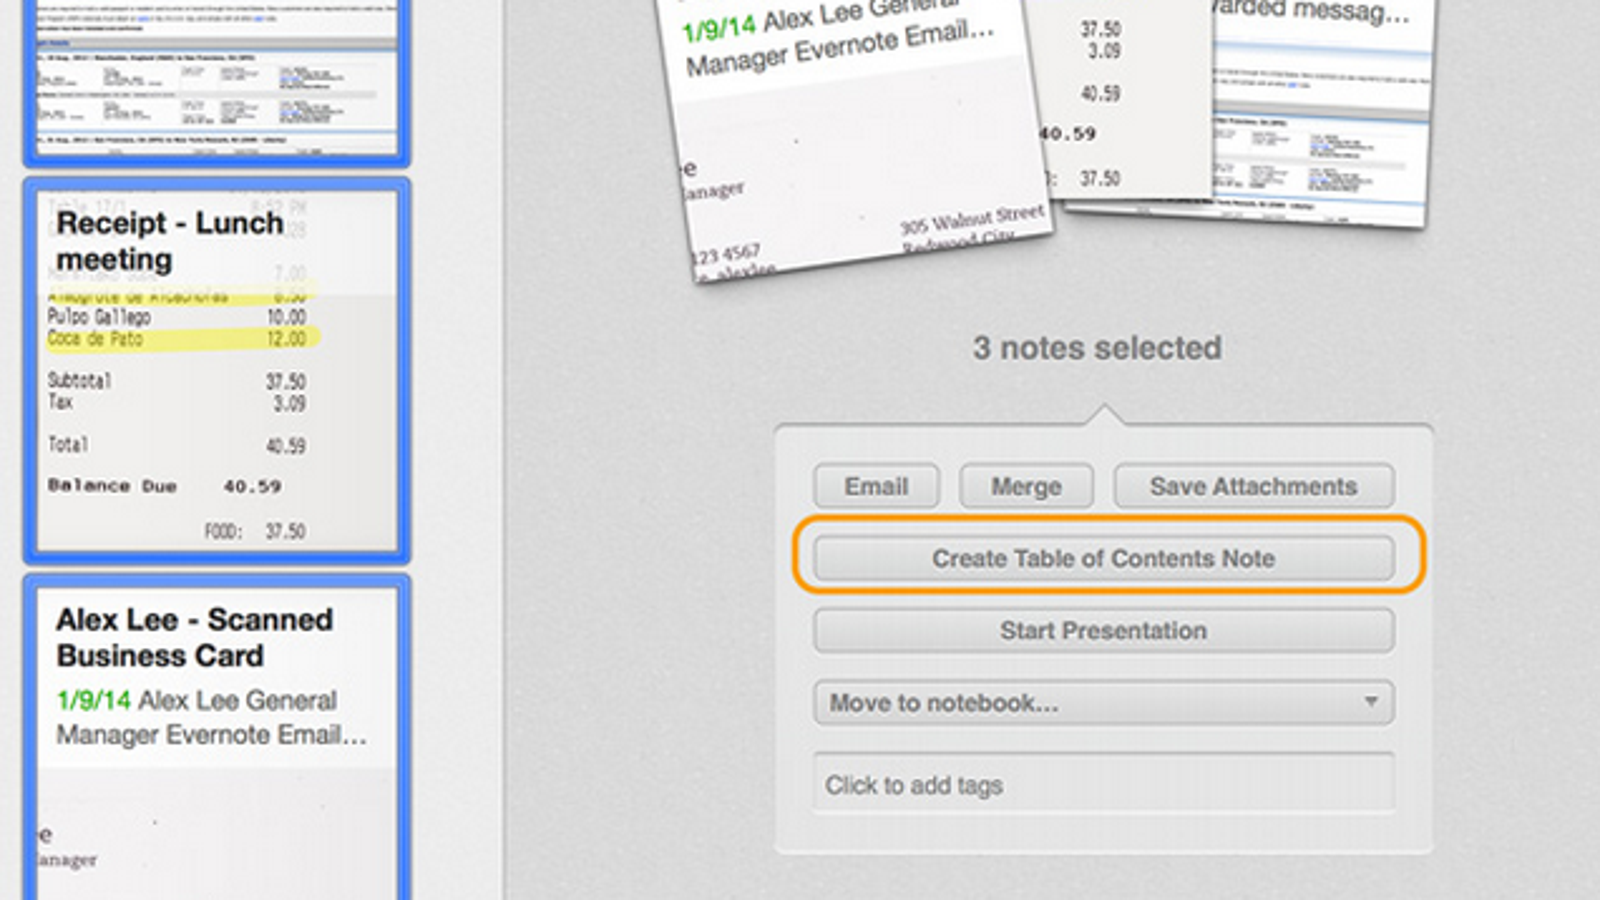 Make a table of contents in evernote for easy access to everything reheart Gallery